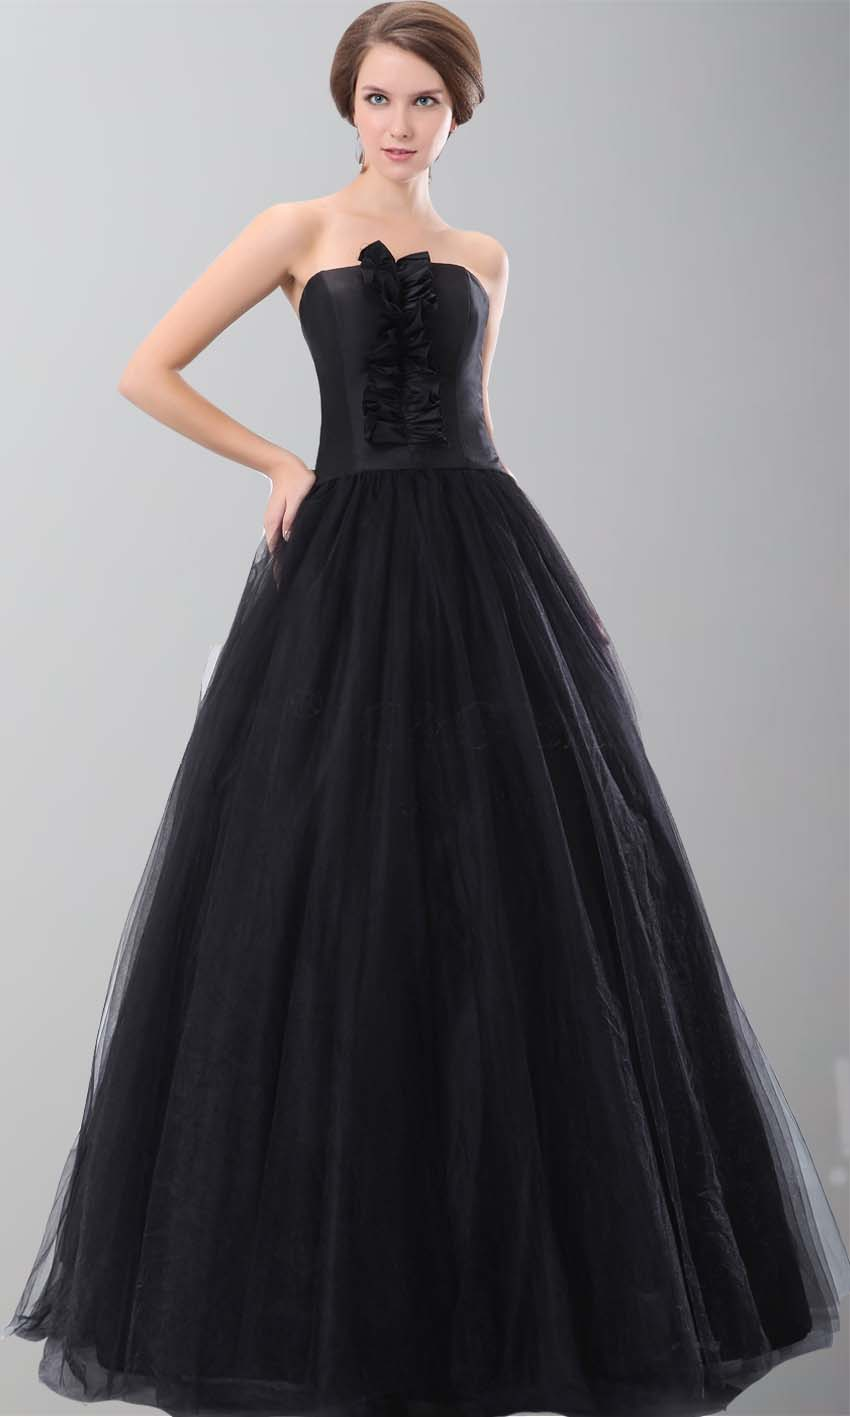 Retro Black Cinderella Lace Up Ball Gowns Ksp202 Ksp202 10300